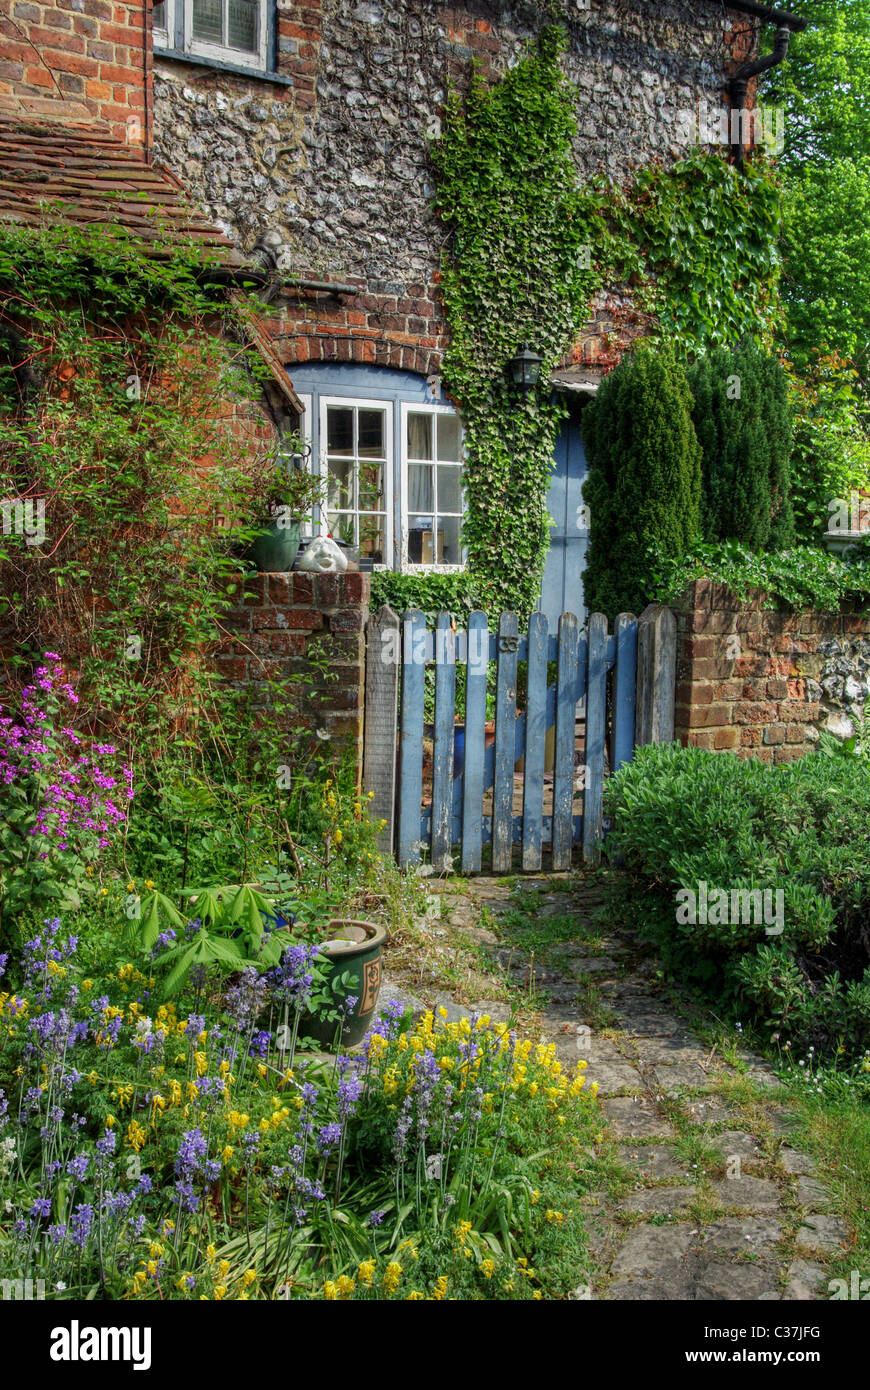 A colourful courtyard garden in the village of West  Wycombe, Buckinghamshire, UK - Stock Image